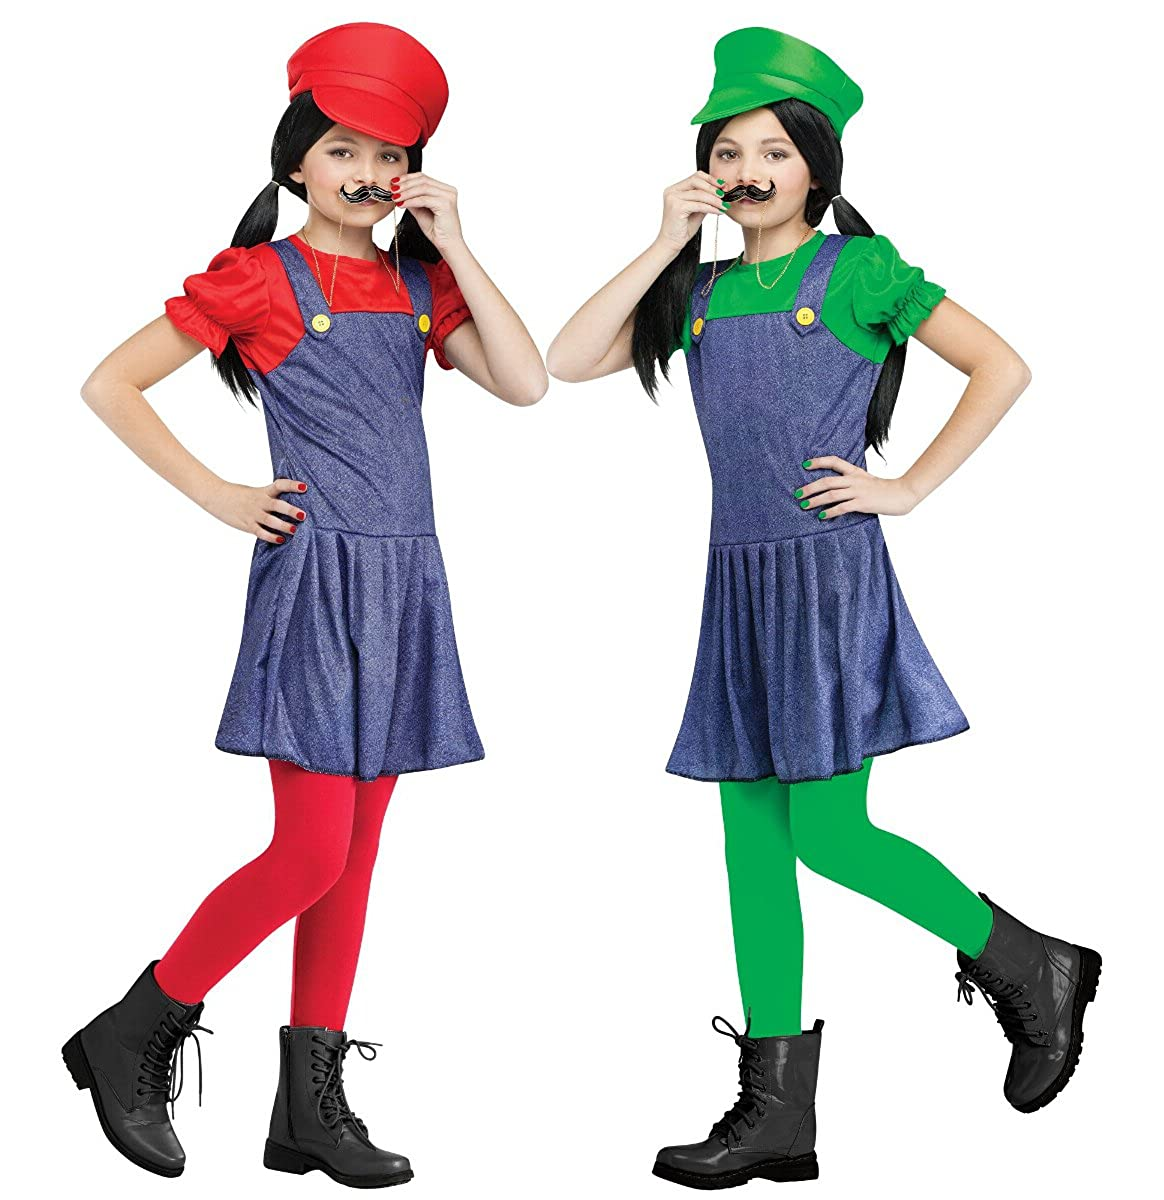 Halloween Video Game Costumes.Fun World Kids Video Game Plumber Brothers Red Girls Halloween Costume